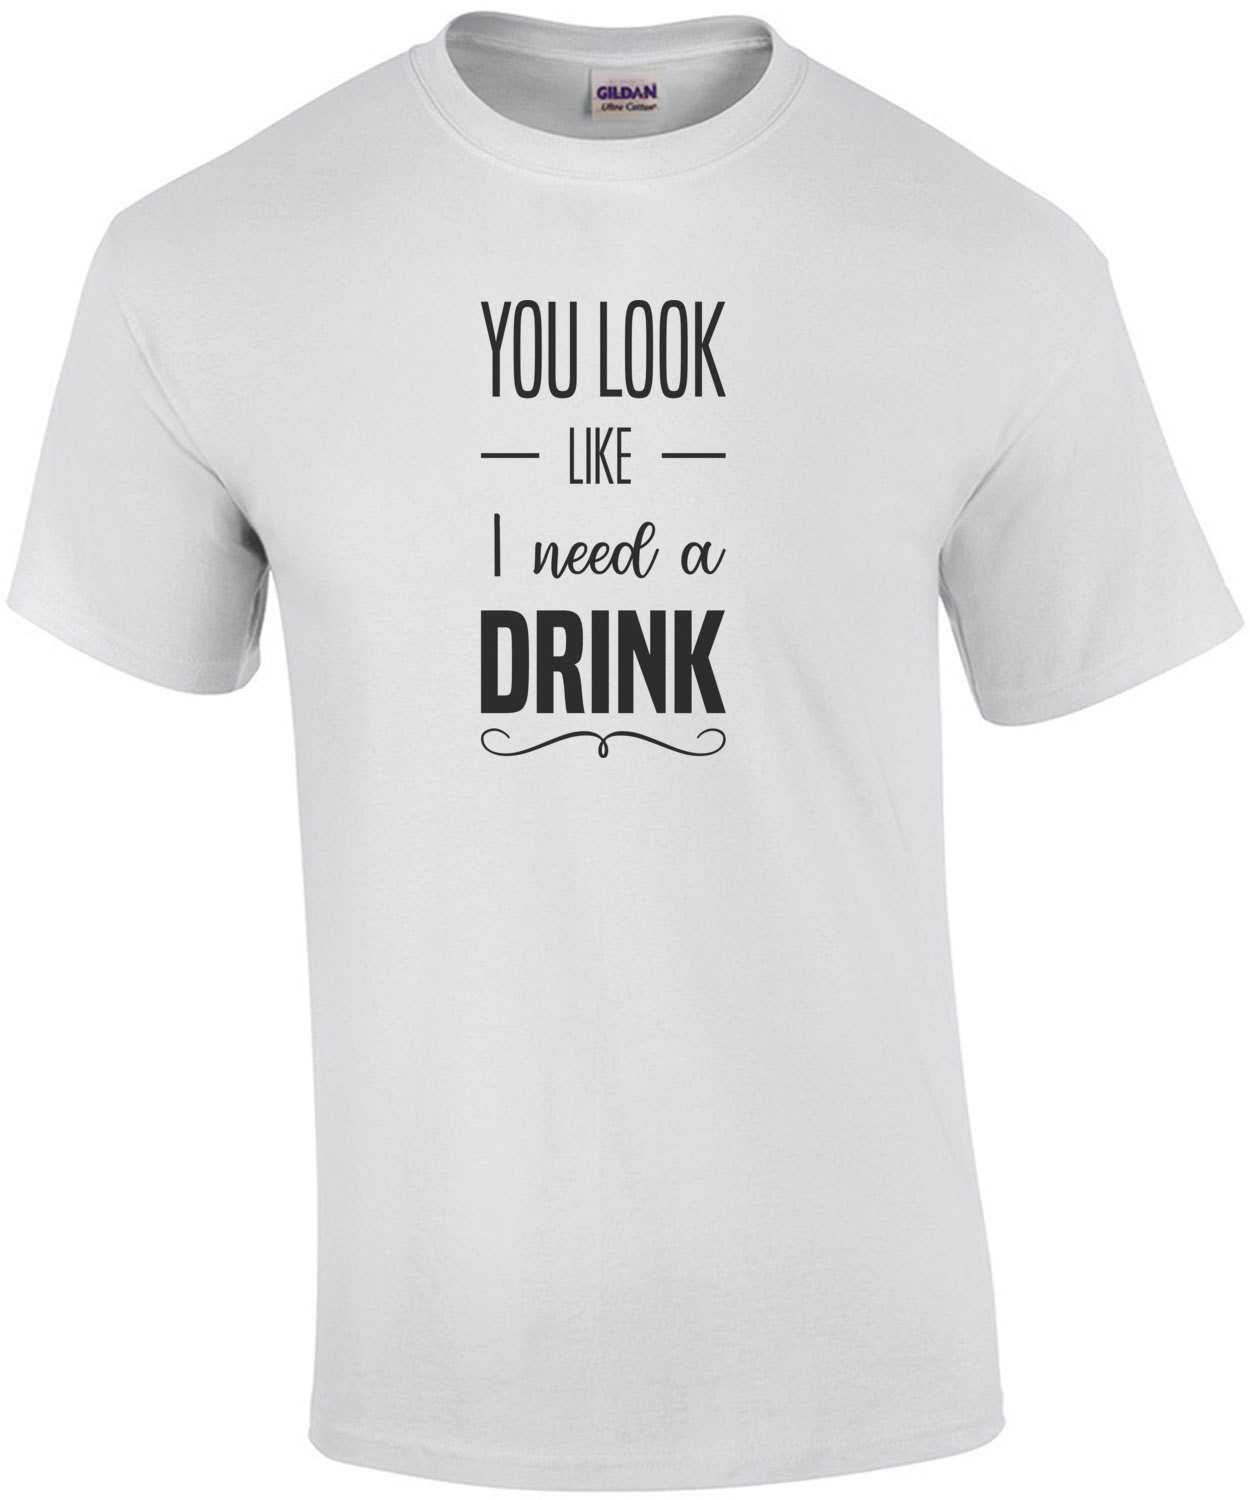 You look like I need a drink - funny drinking t-shirt